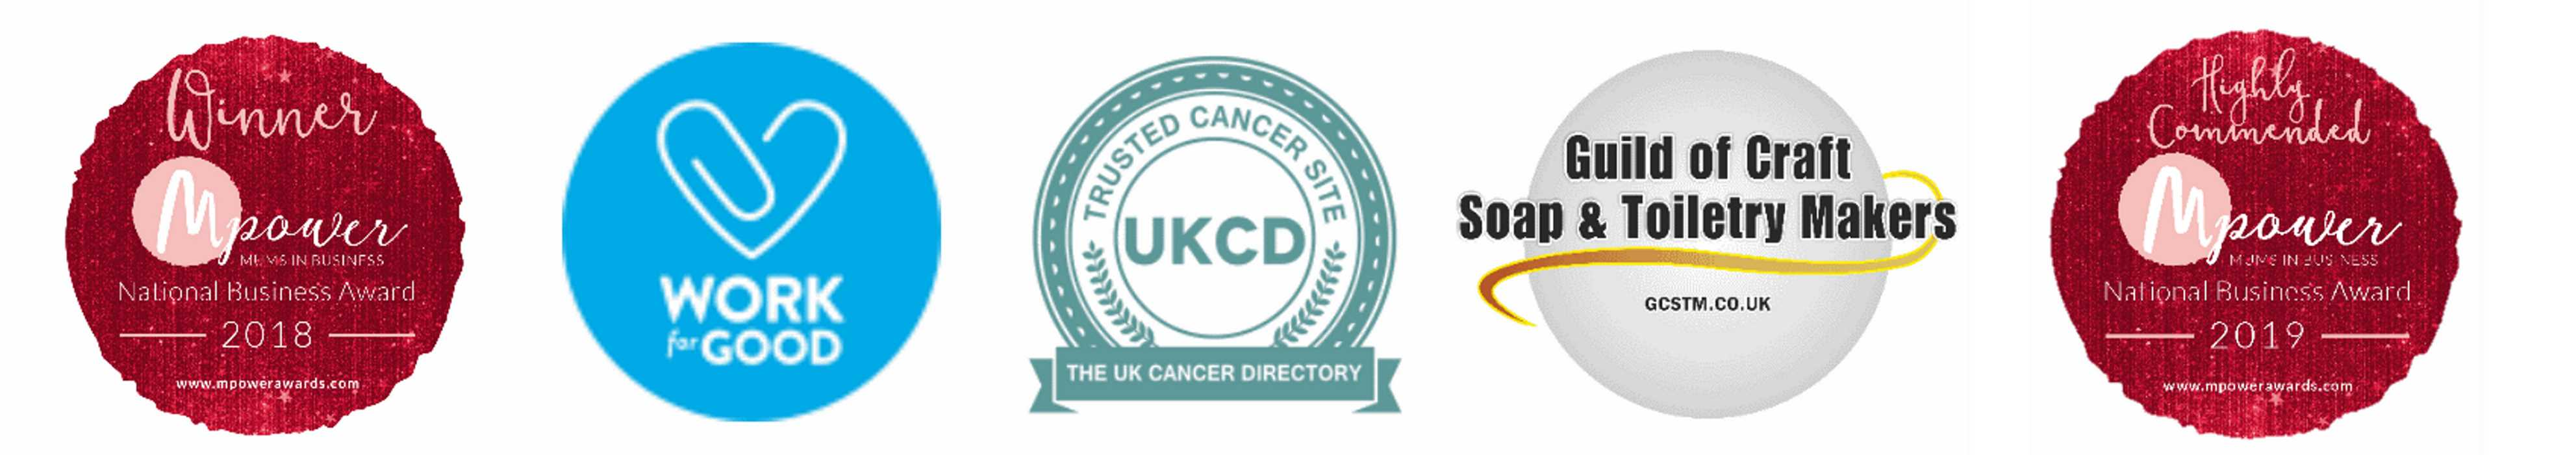 Winner of M-power mums in business national business award 2018, A Work for Good business, a Trusted cancer site on the UKCD UK Cancer Directory, part of the Guild of Craft Soap and Toiletry Makers, and Highly Commended in the 2019 National Business Awards.